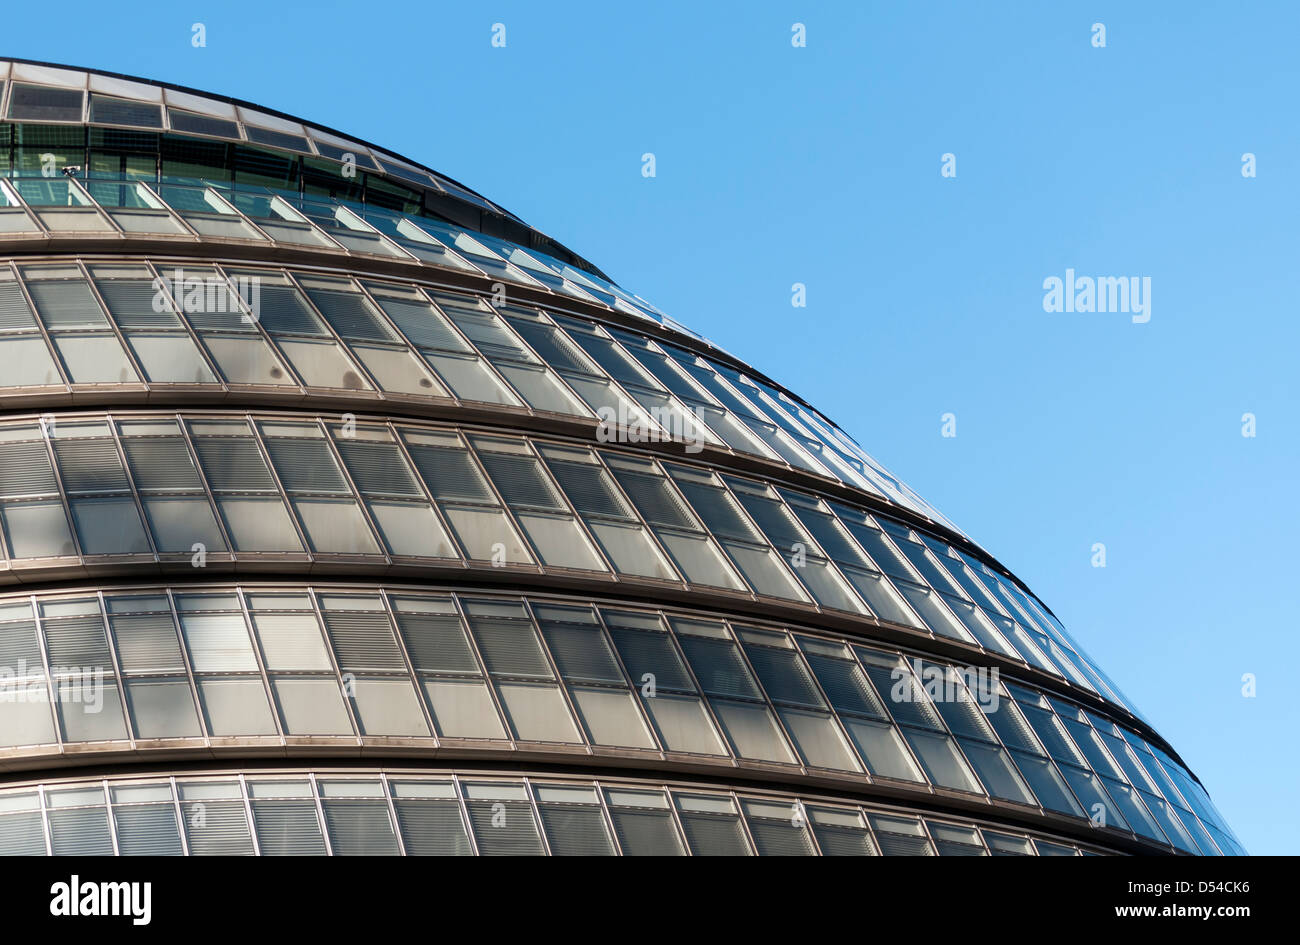 Close-up of Facade of London City Hall (Greater London Authority Building) designed by Norman Foster, England, UK - Stock Image